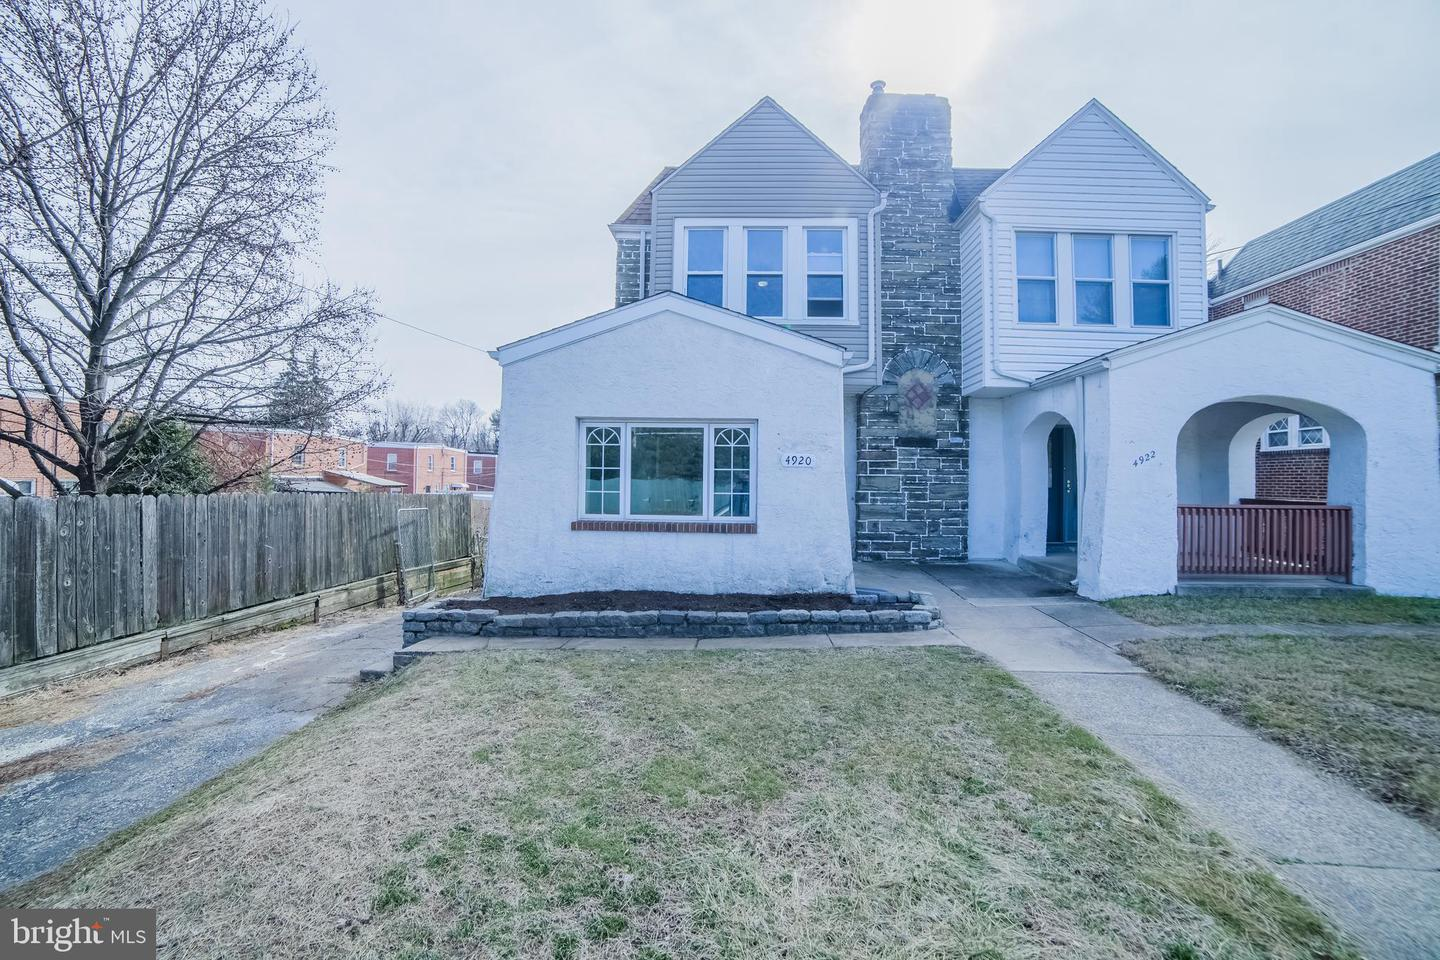 4920 State Road Drexel Hill, PA 19026